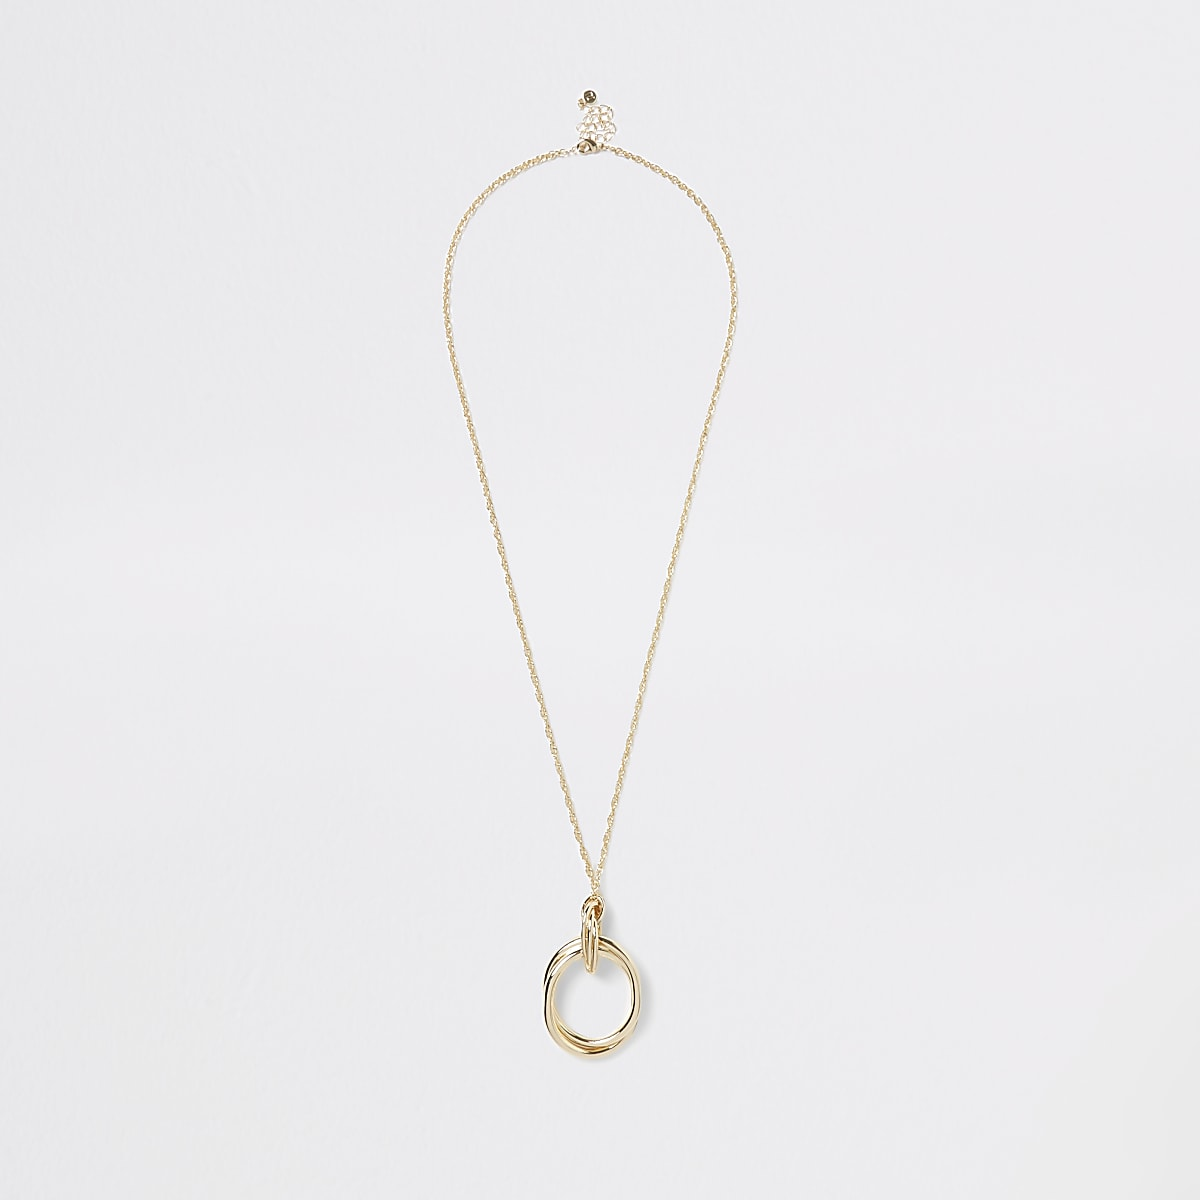 Gold colour long circle pendant necklace